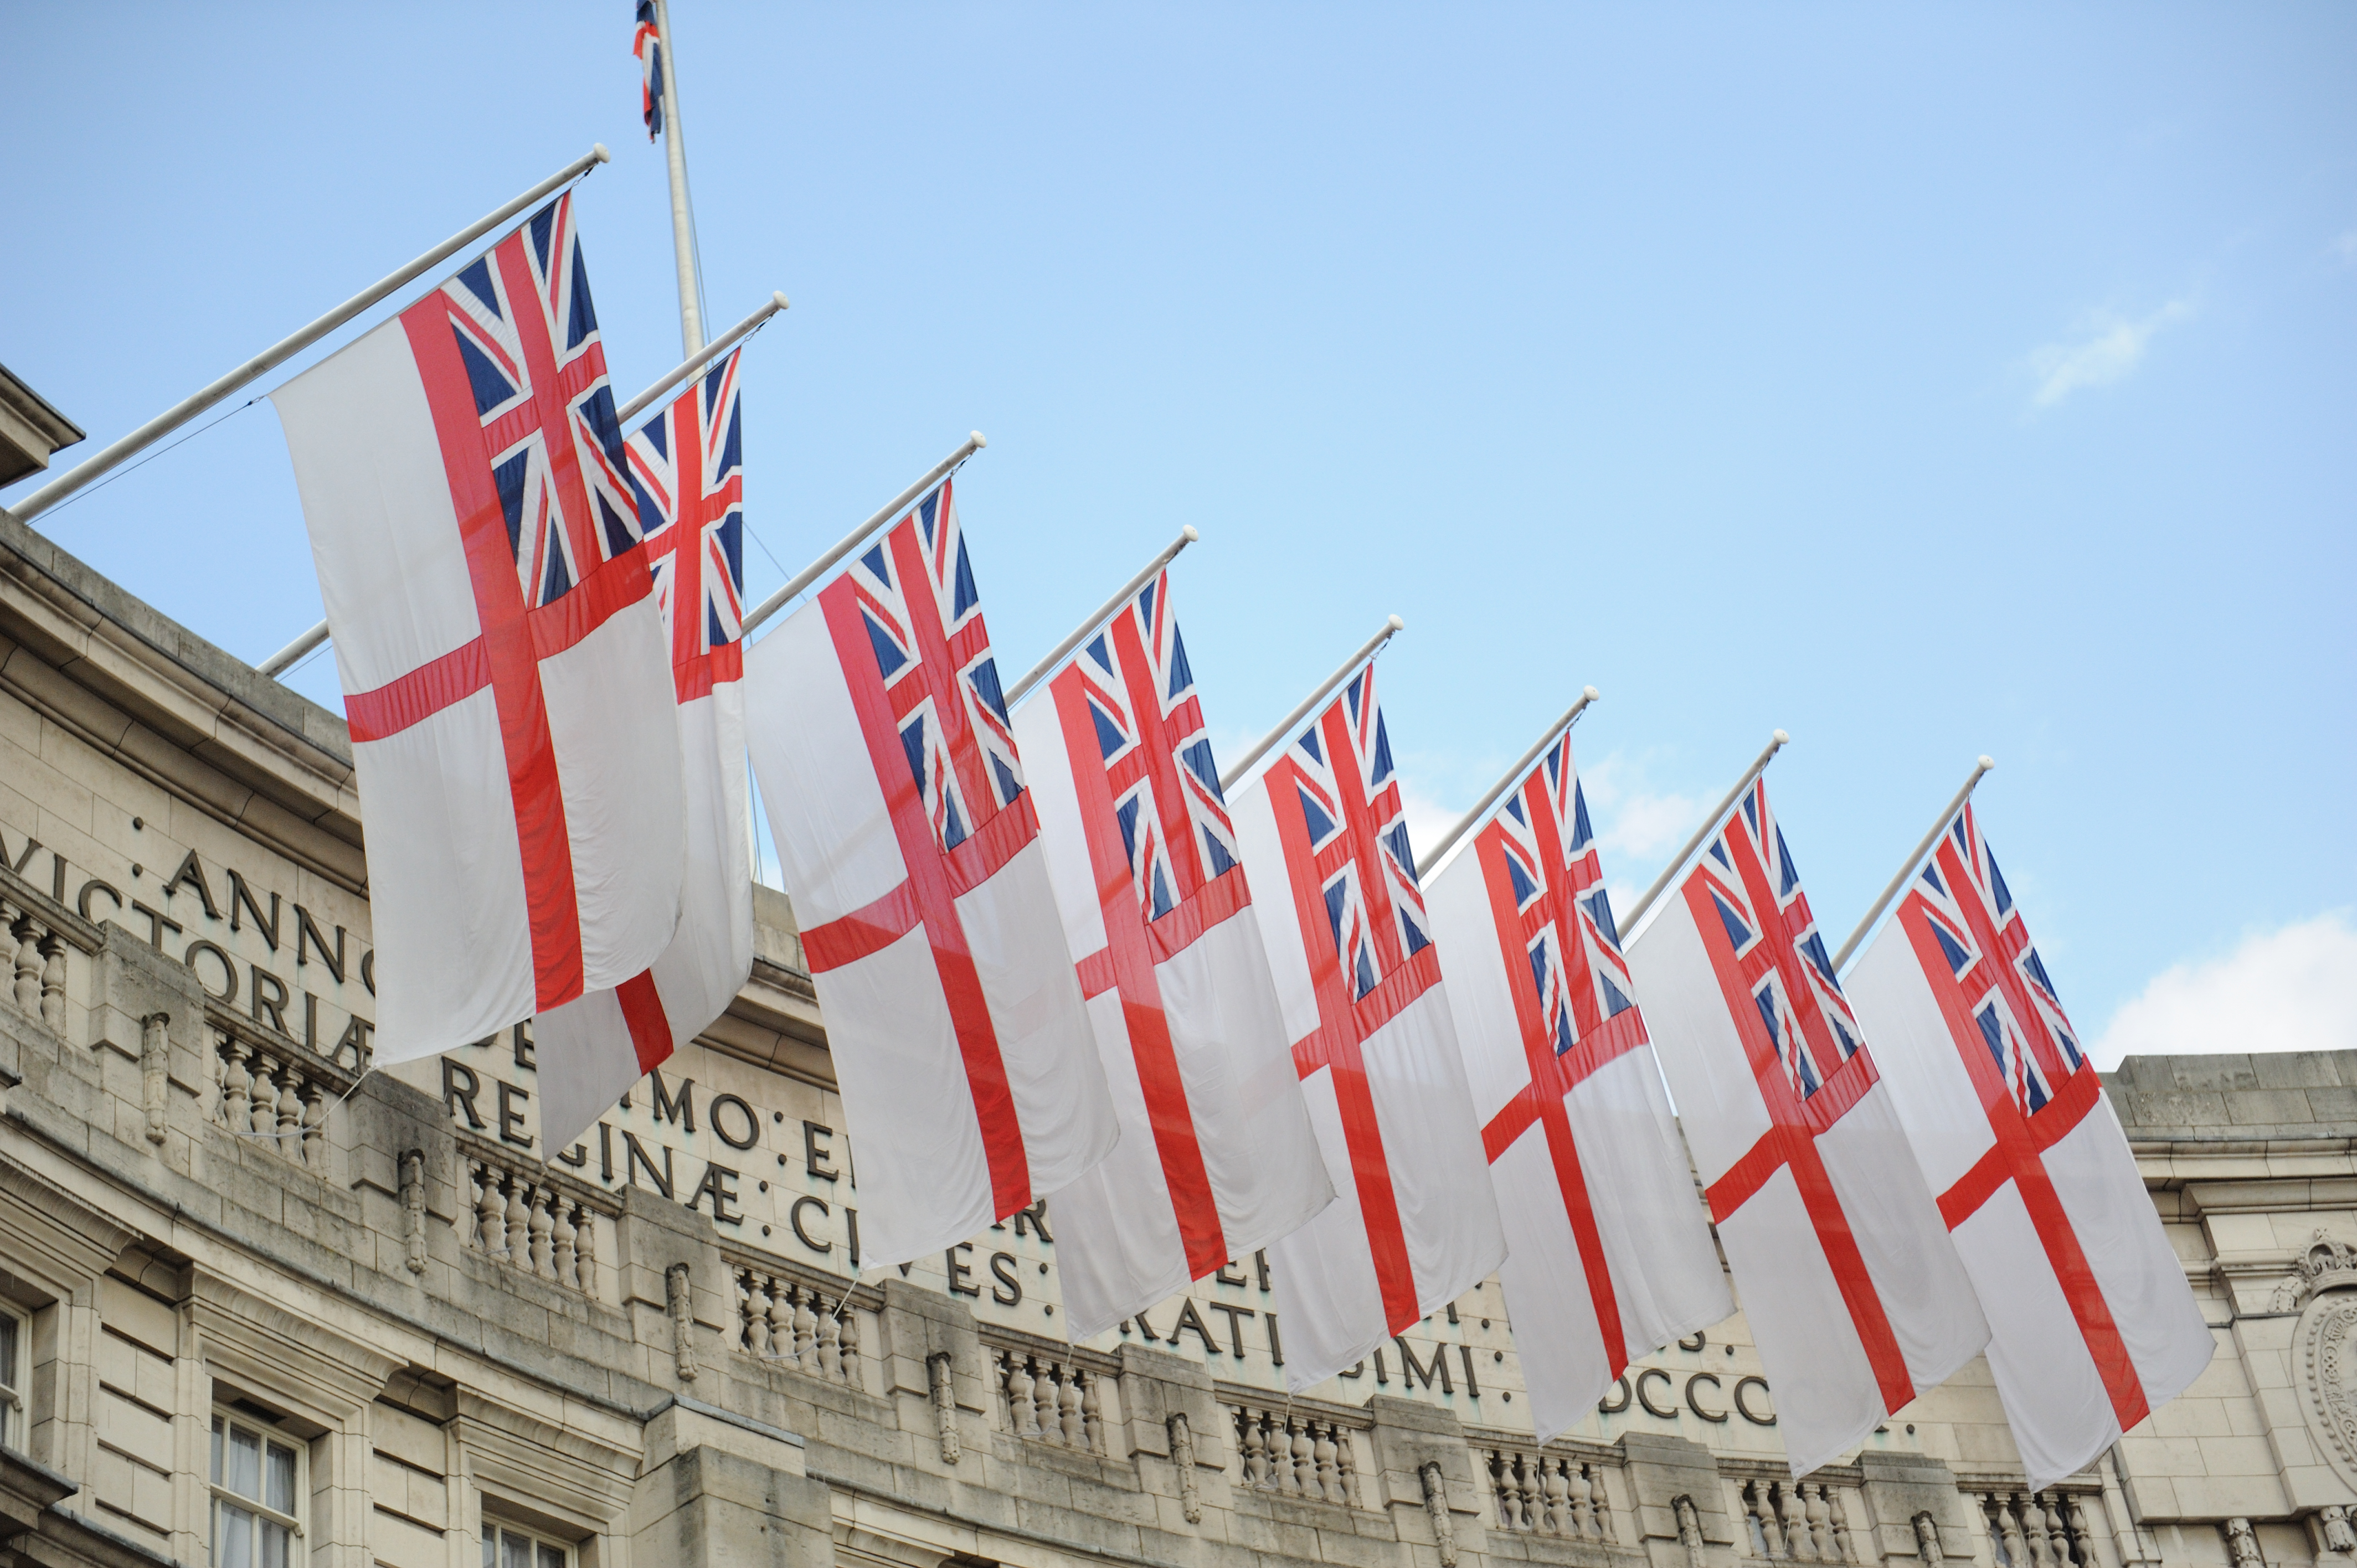 cry god for harry england and st george the other side of